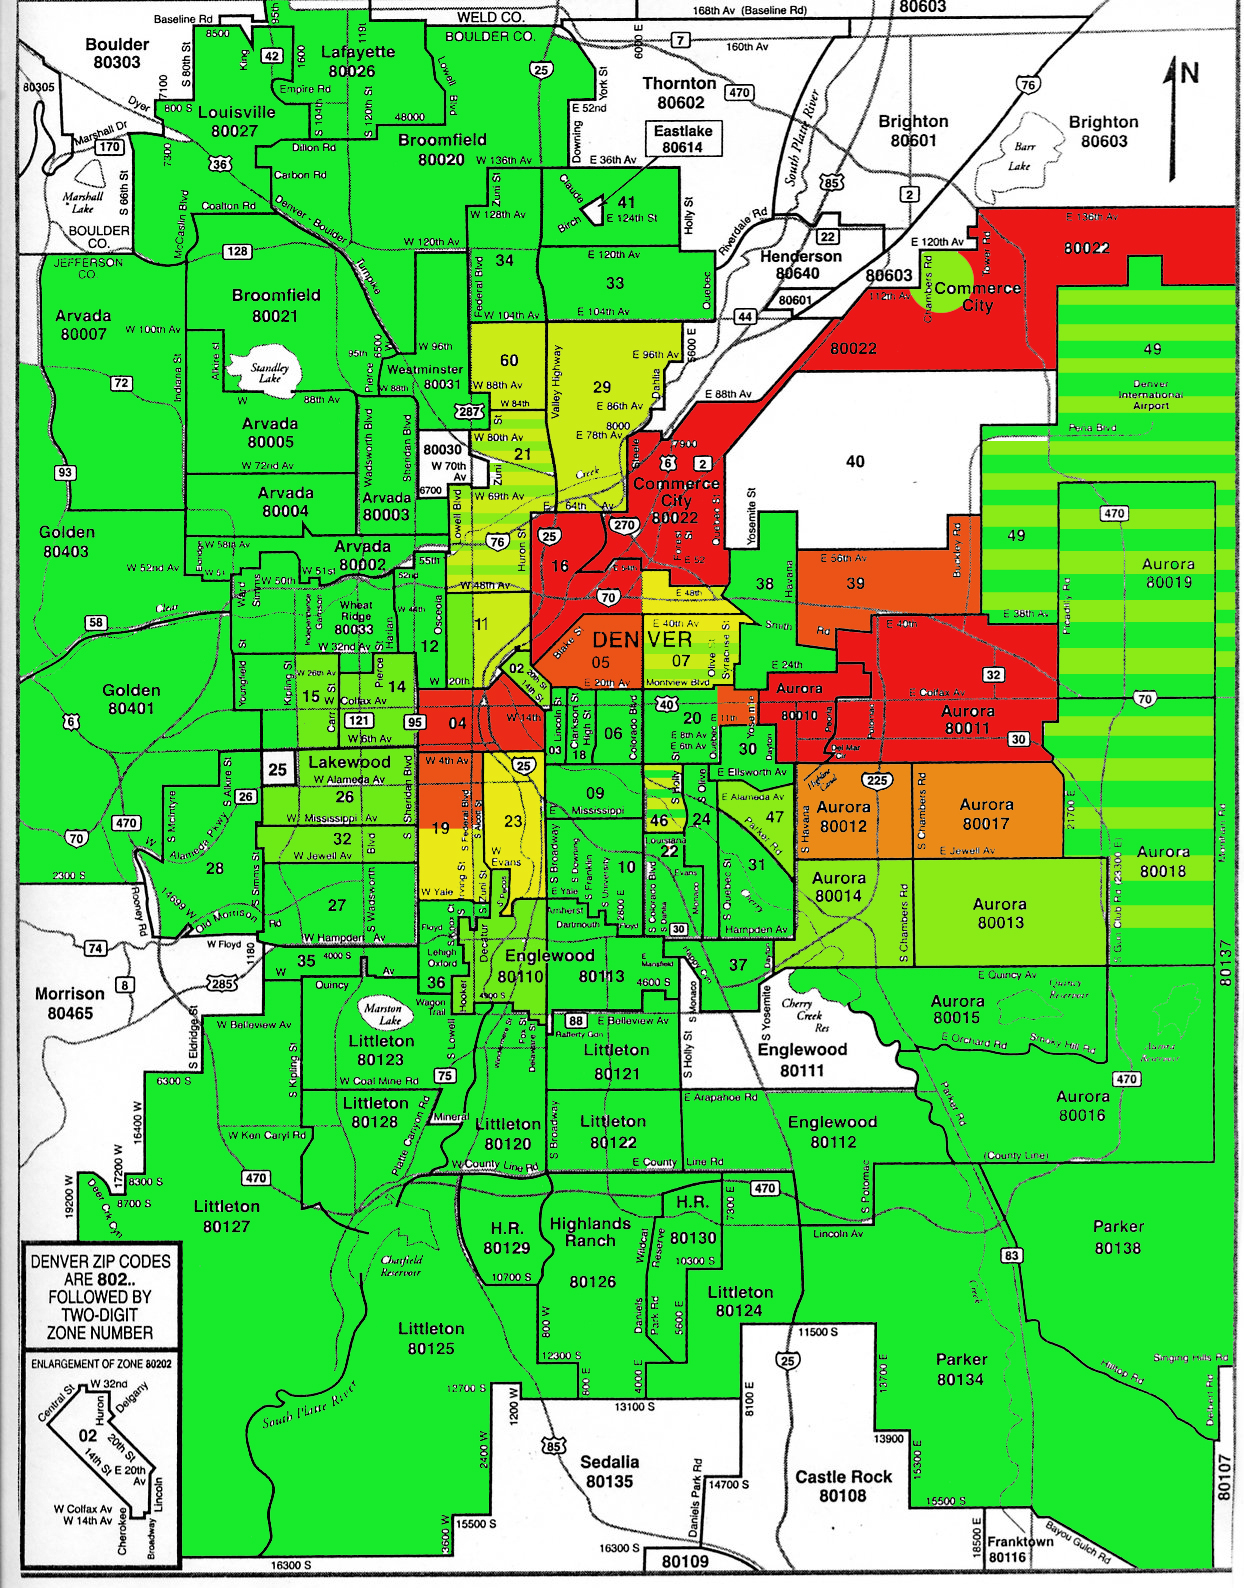 What Are Denver S Bad Areas Evans Aguilar Neighborhood Live